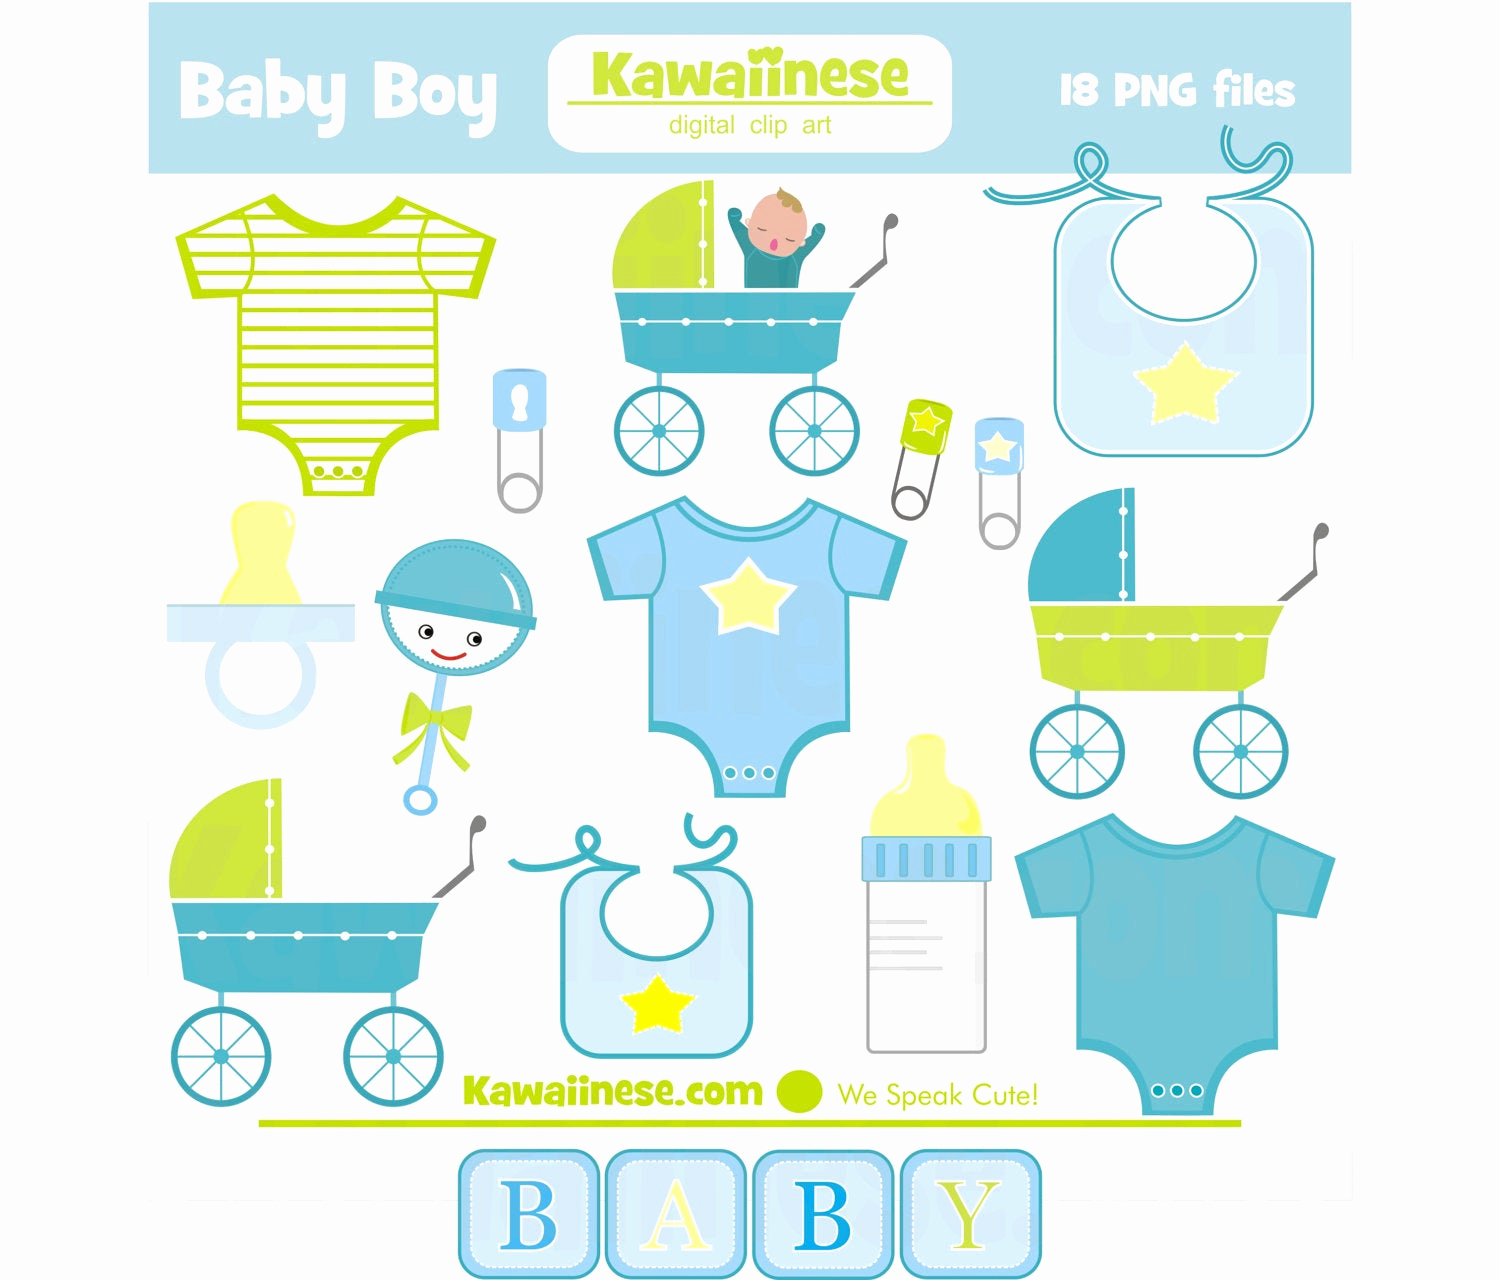 Baby Shower Invitation Clipart Inspirational Baby Boy Clipart Digital Clip Art Baby Shower Invitations